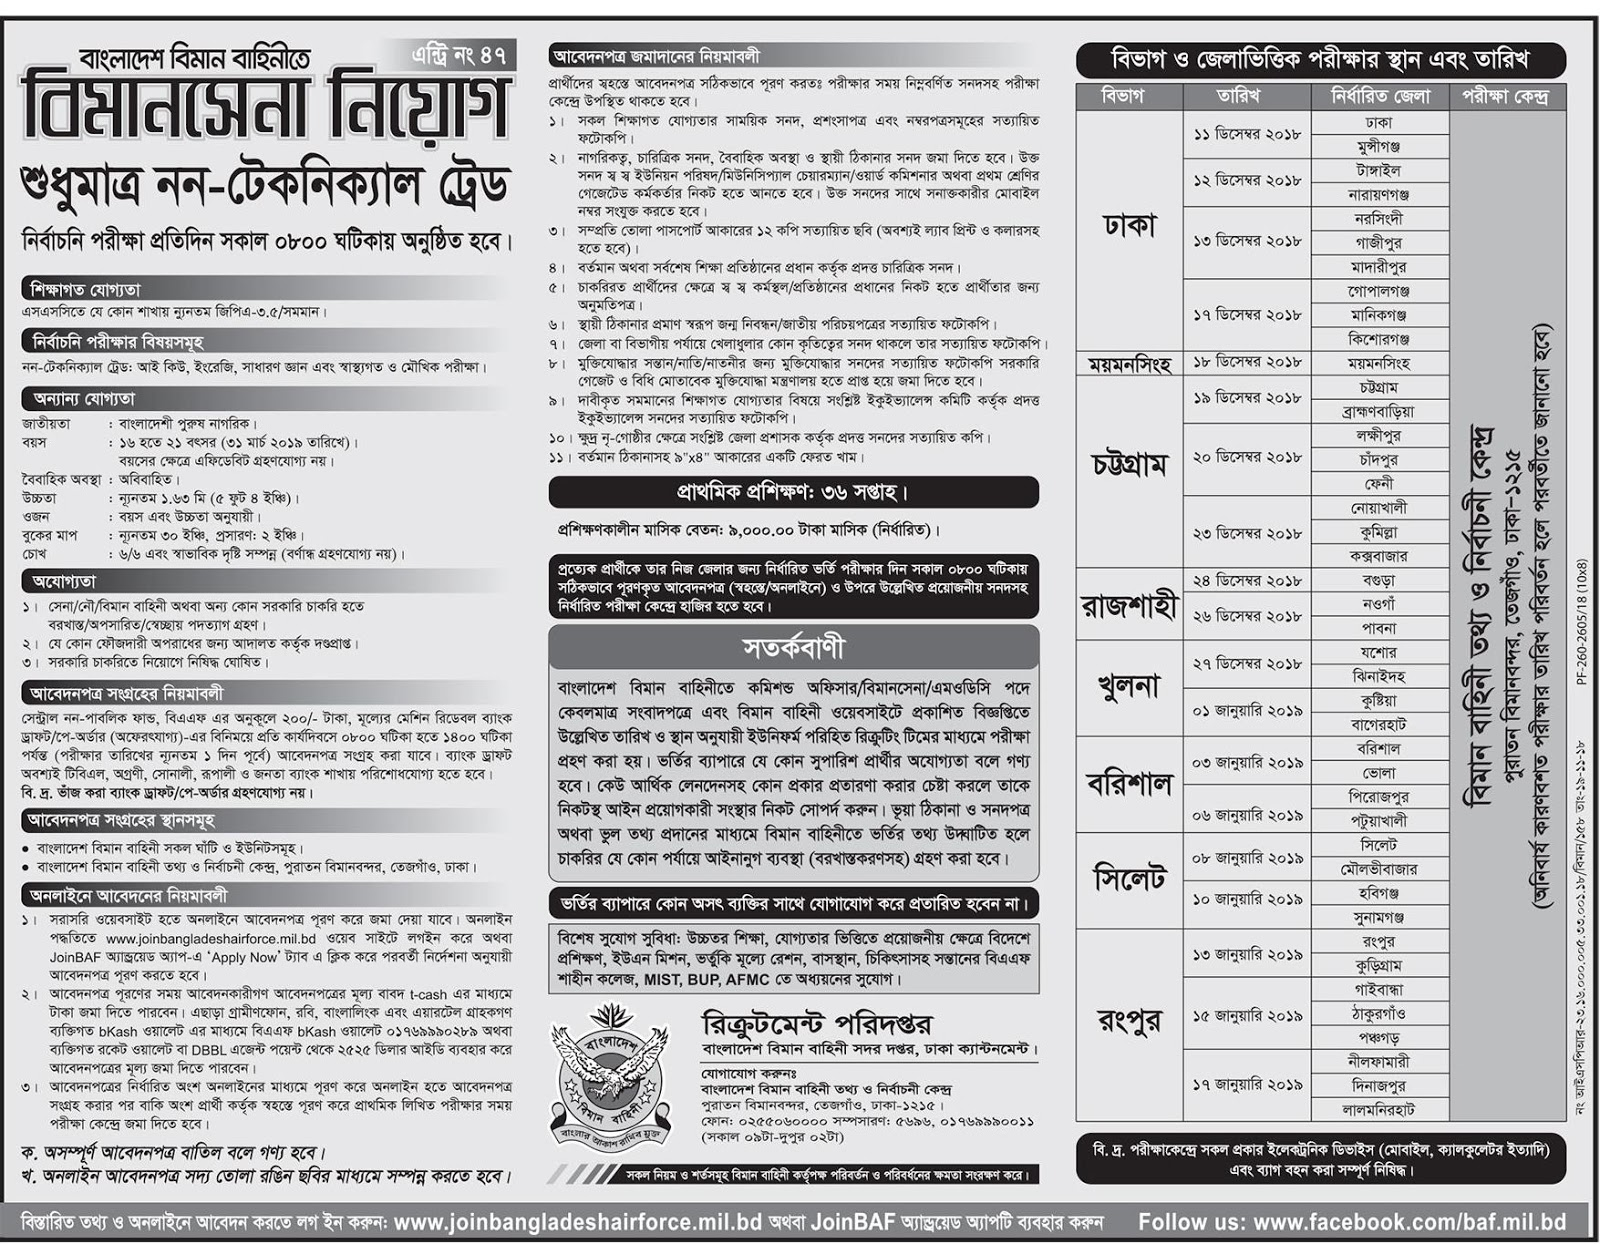 Bangladesh Air Force Airman (Non-Technical) Recruitment Circular 2018